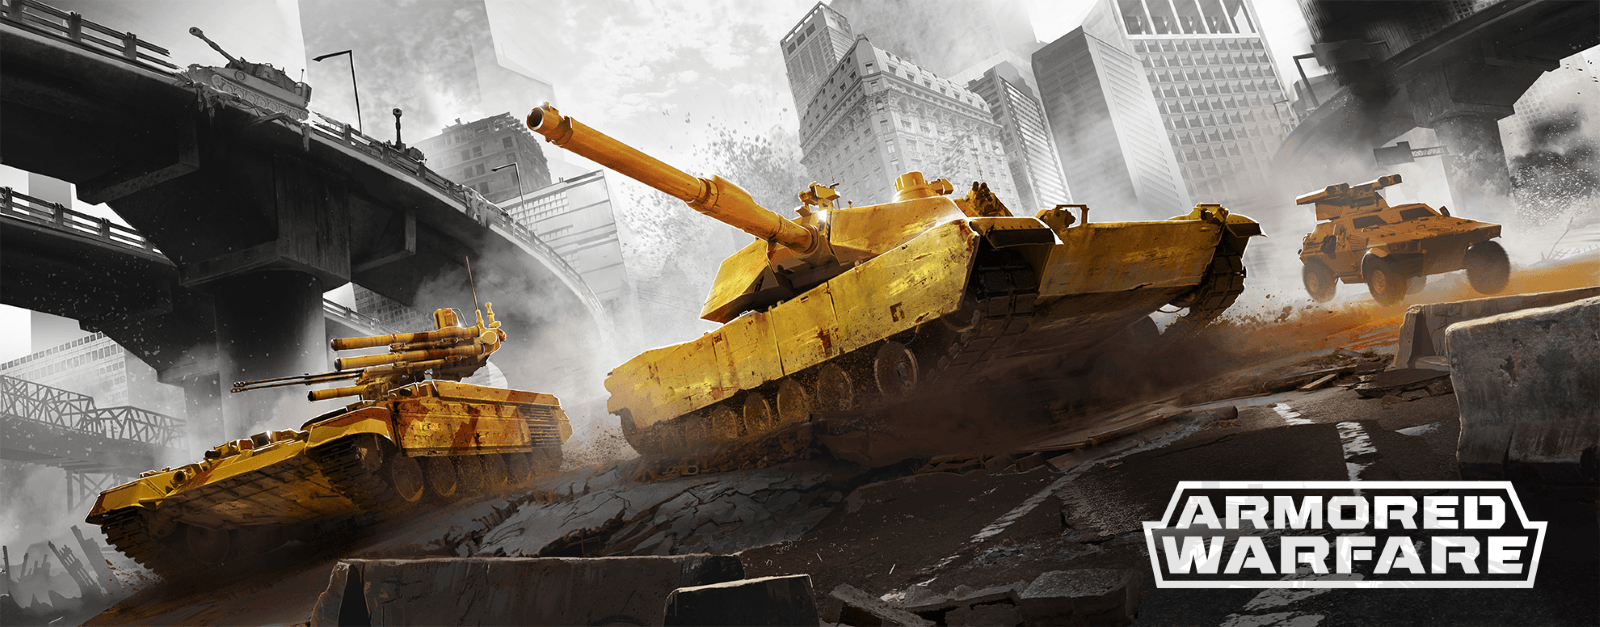 Armored Warfare now in Worldwide Open Beta news header